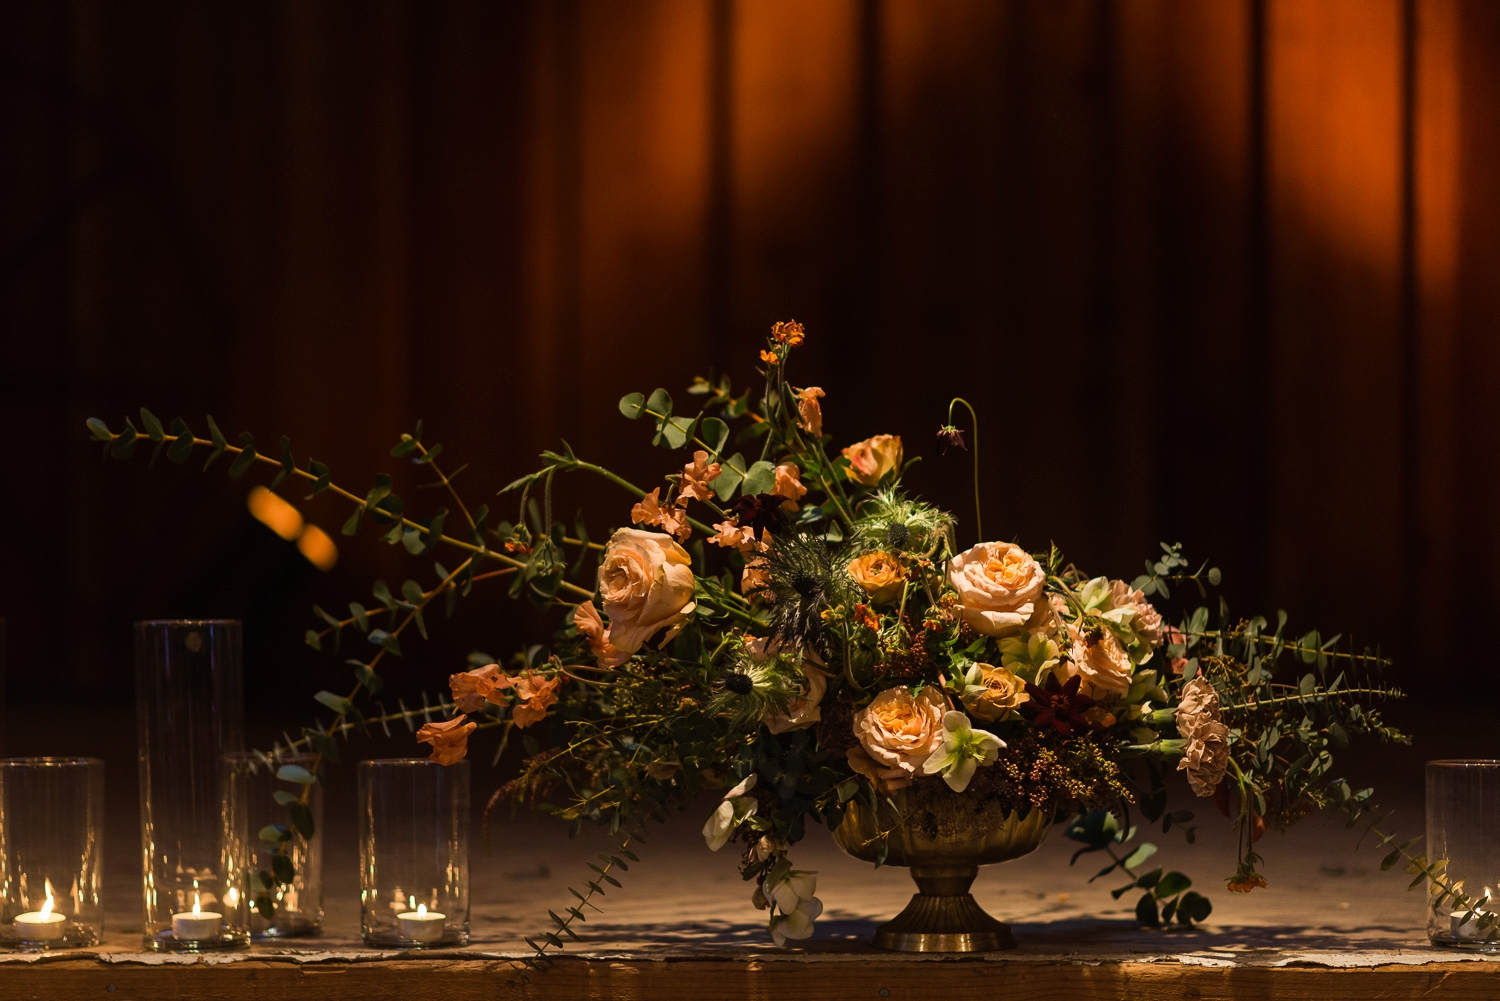 Wedding flowers on a wooden stage